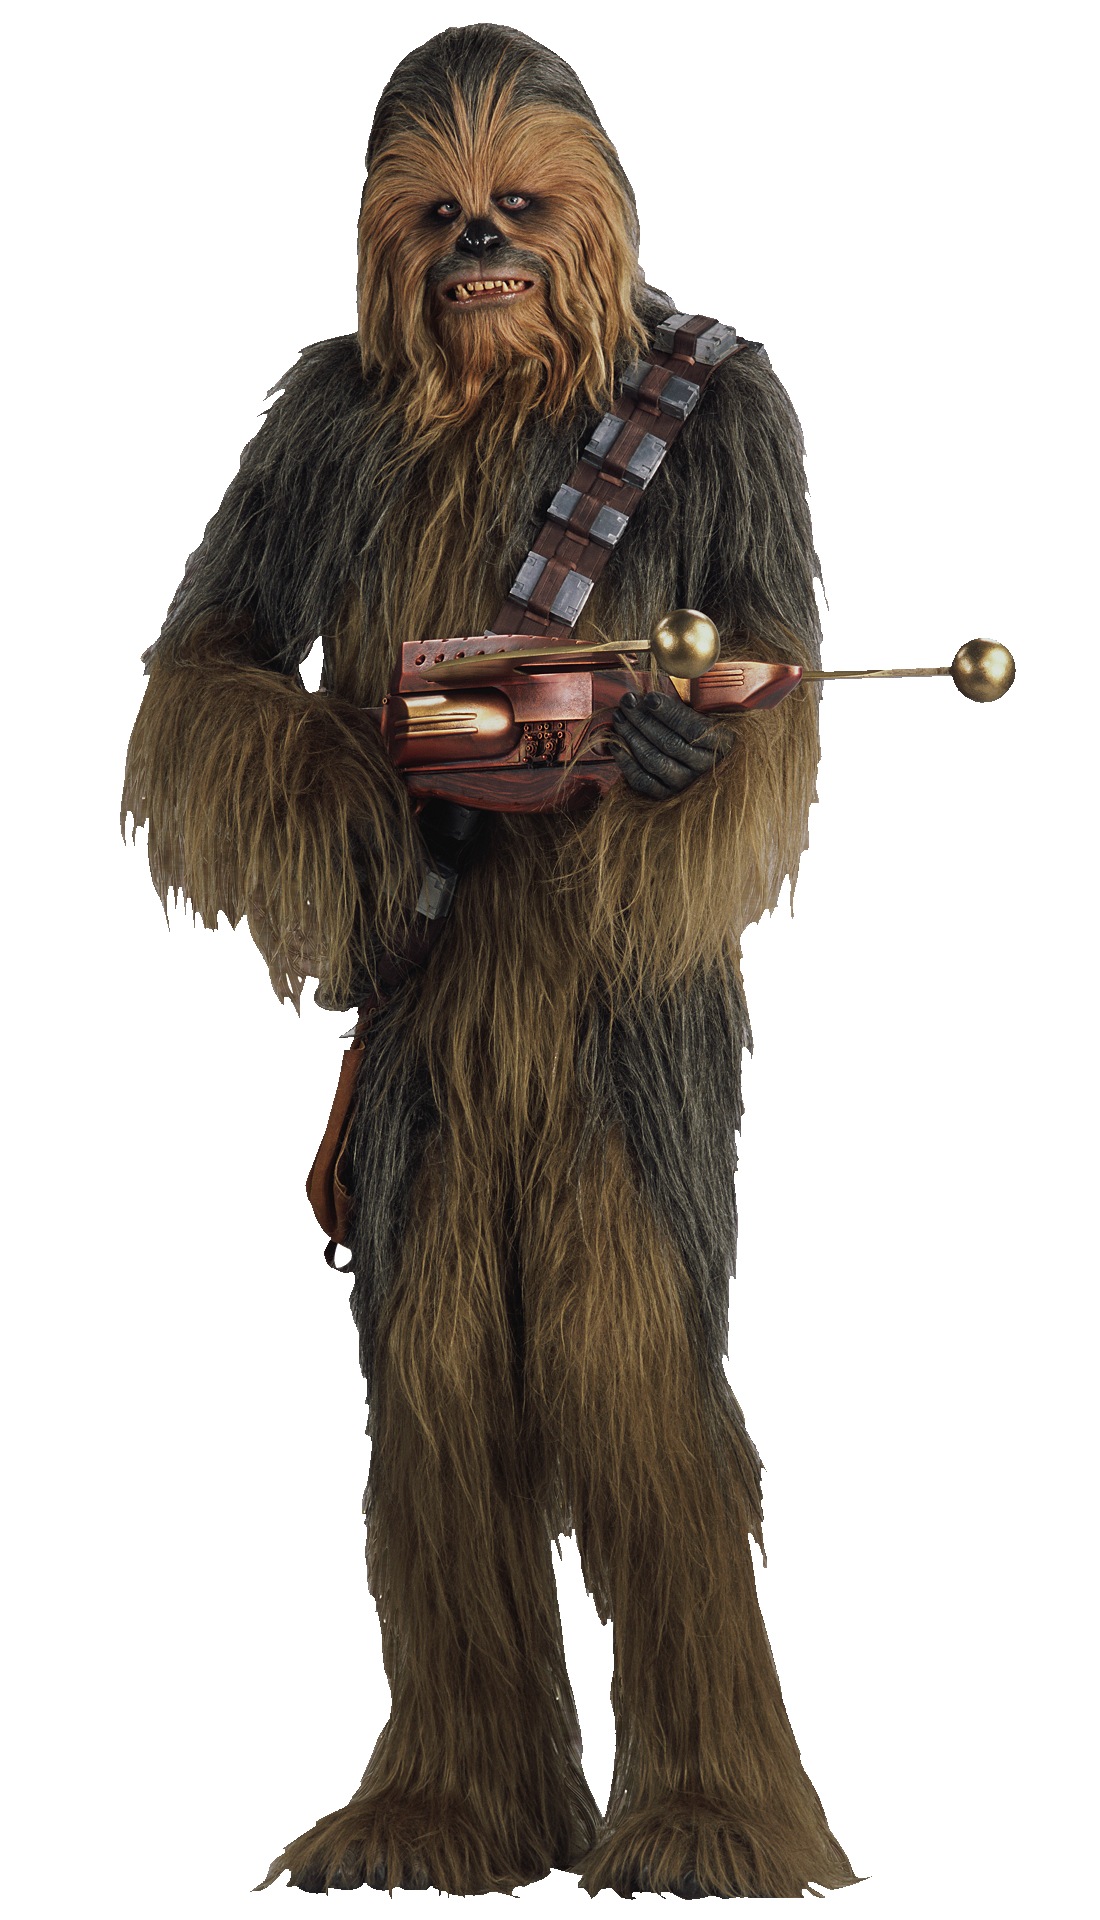 vector Chewbacca transparent background. Star wars png image